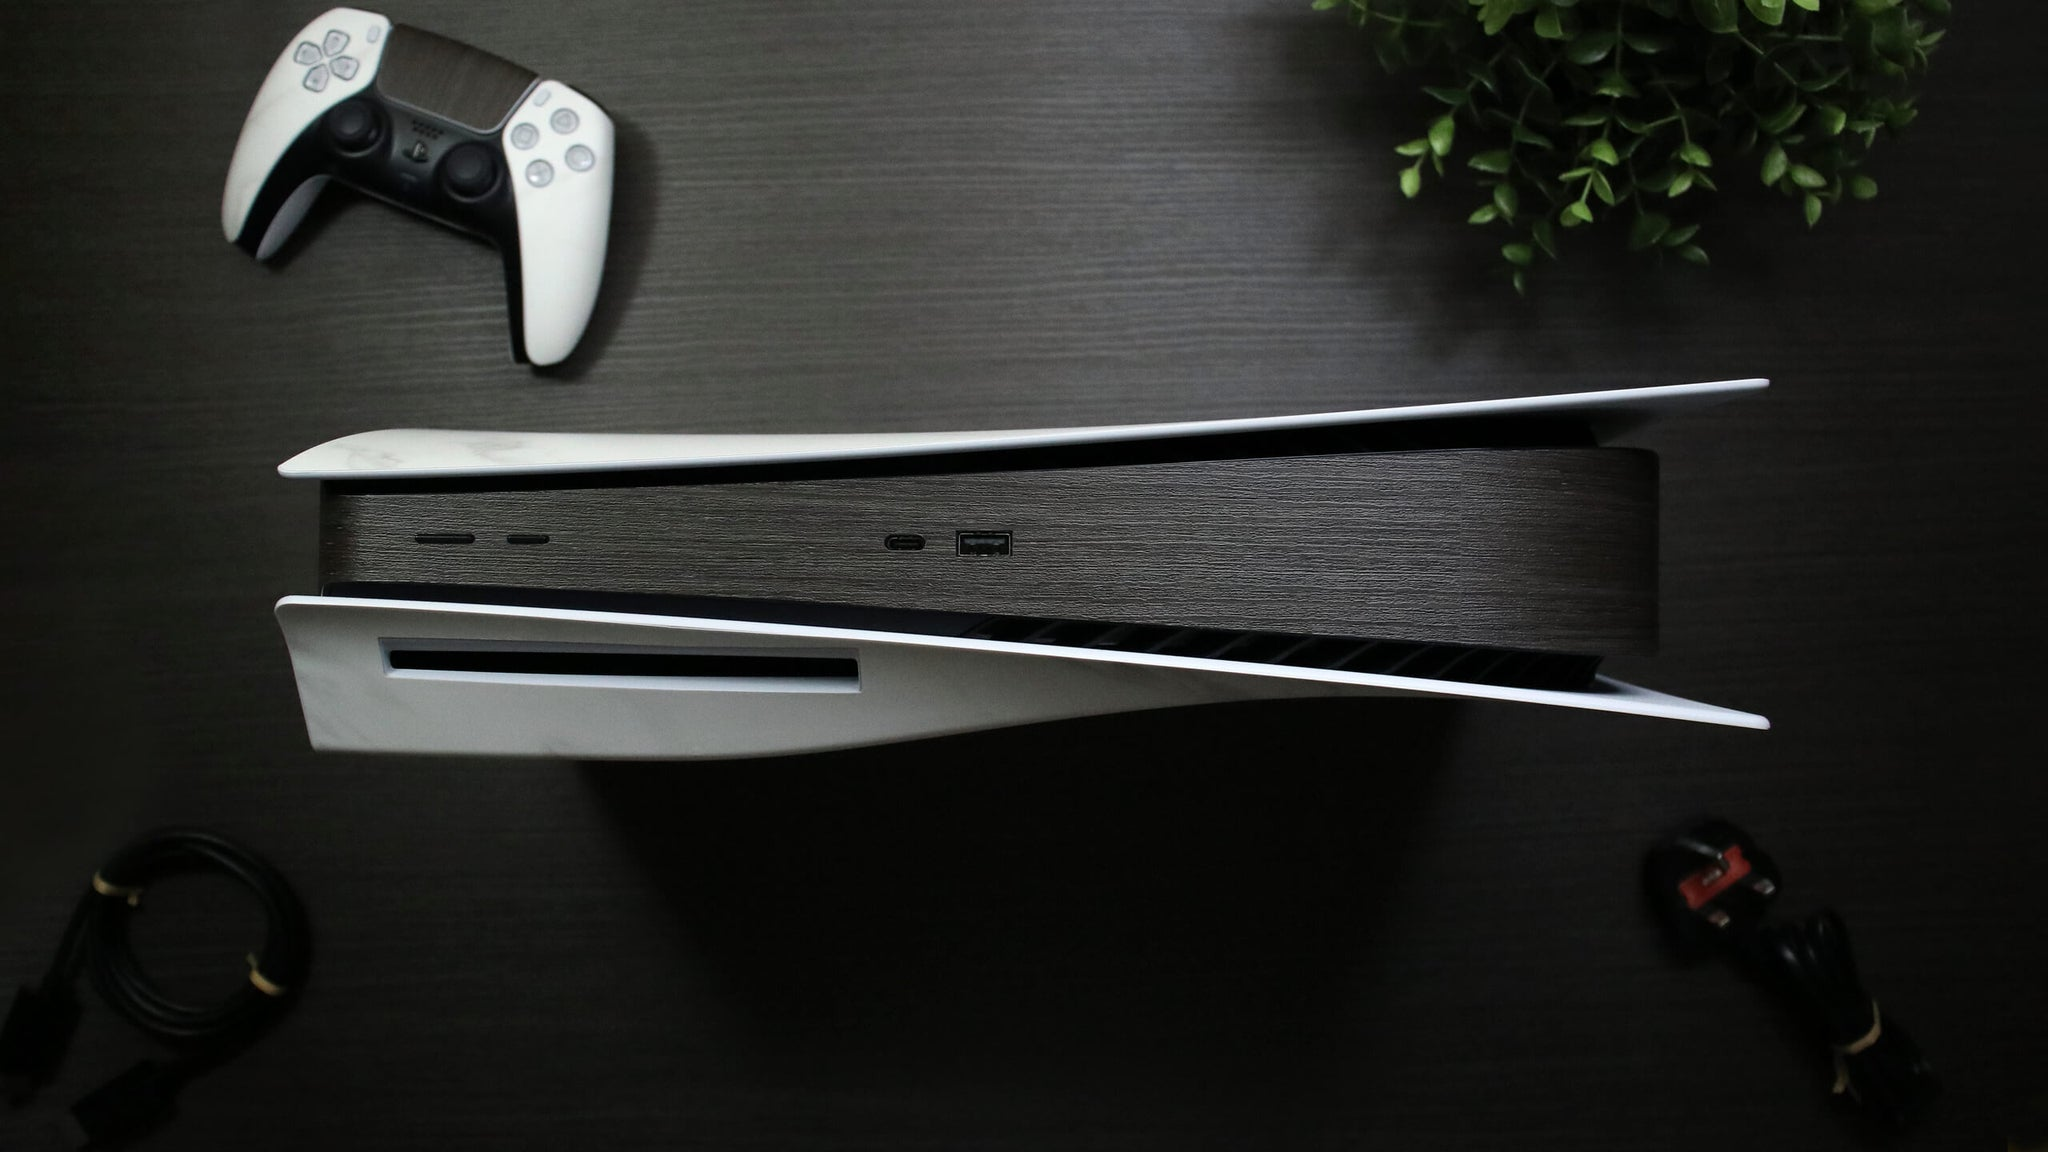 Sony PS5 Console Silverblack Wood Skins